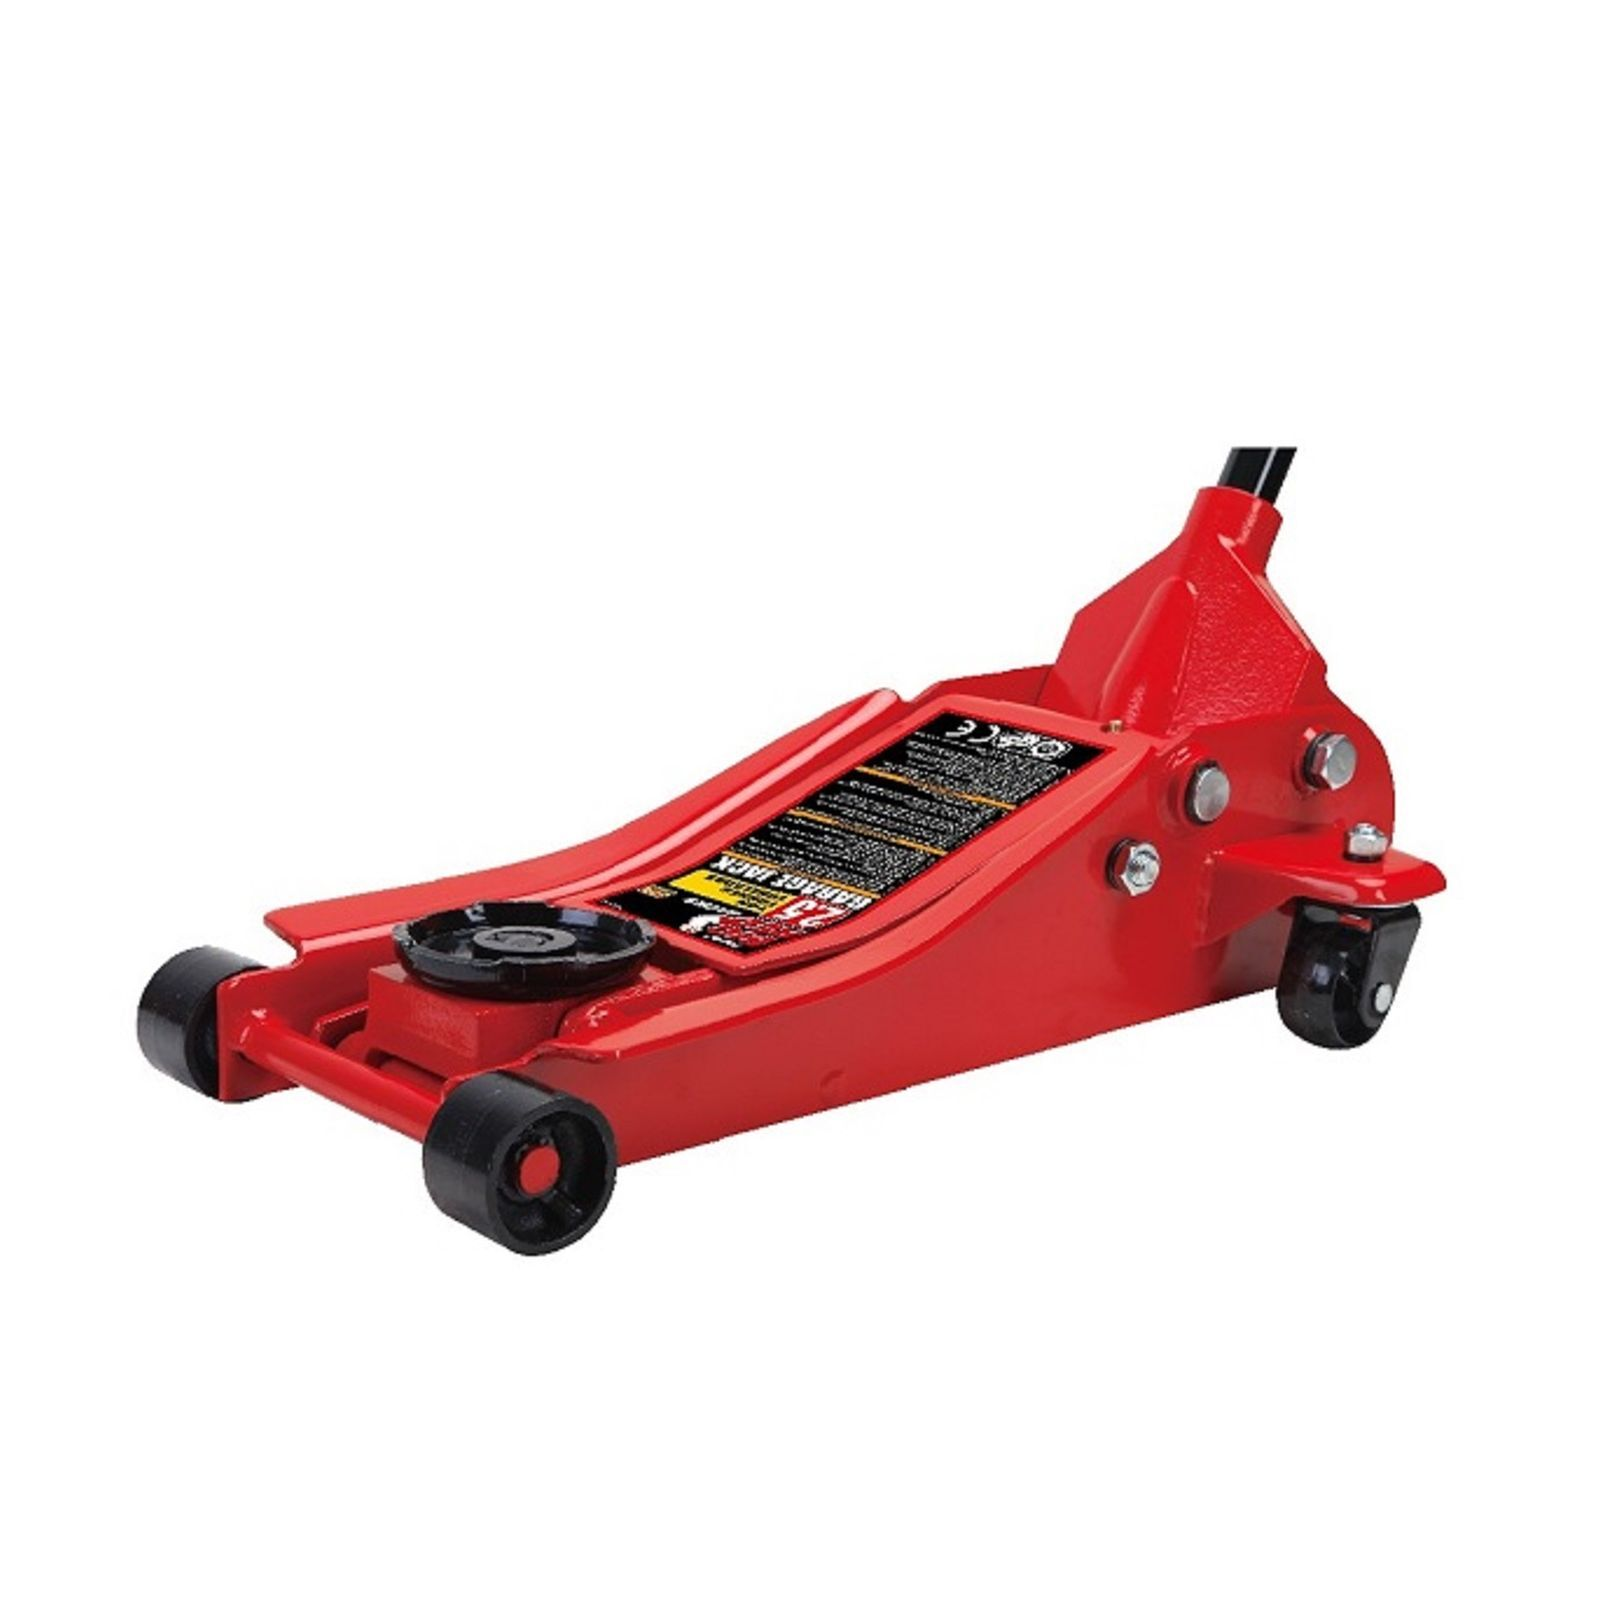 KC Tools 2 Tonne Low Profile Service Trolley Jack